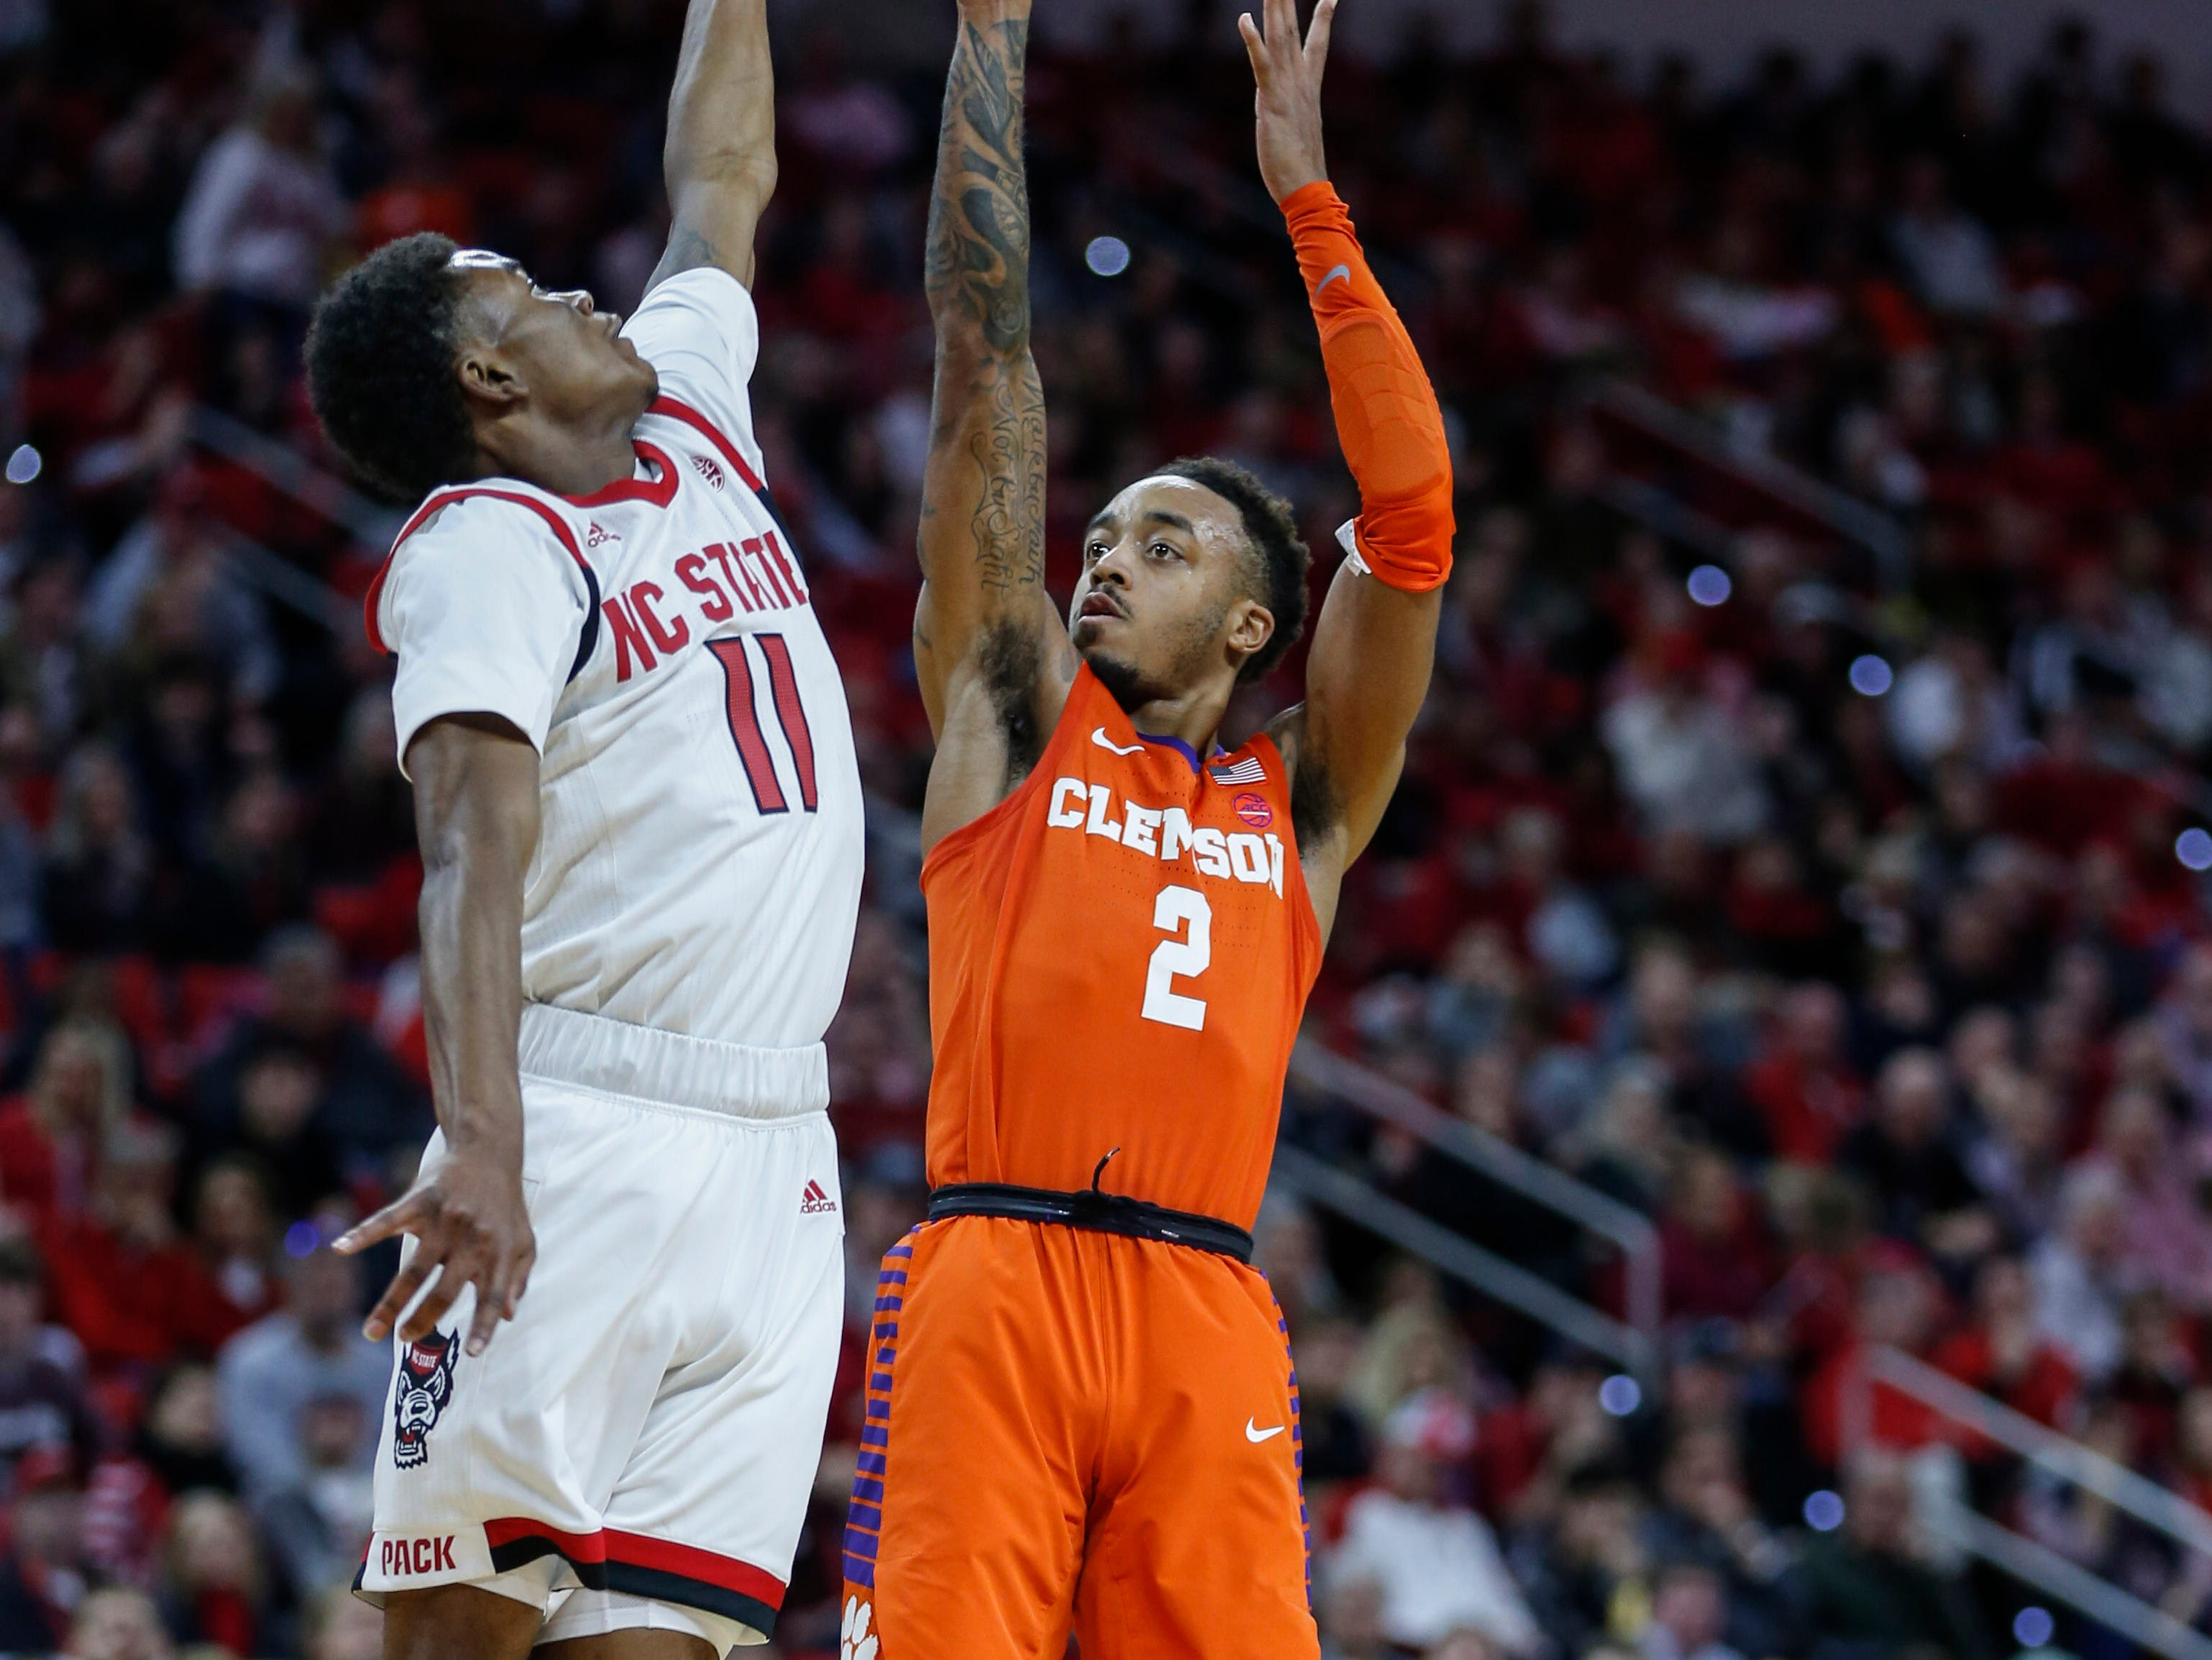 Jan 26, 2019; Raleigh, NC, USA; Clemson Tigers guard Marcquise Reed (2) shoots the ball over North Carolina State Wolfpack guard Markell Johnson (11) in the second half at PNC Arena. Mandatory Credit: Nell Redmond-USA TODAY Sports